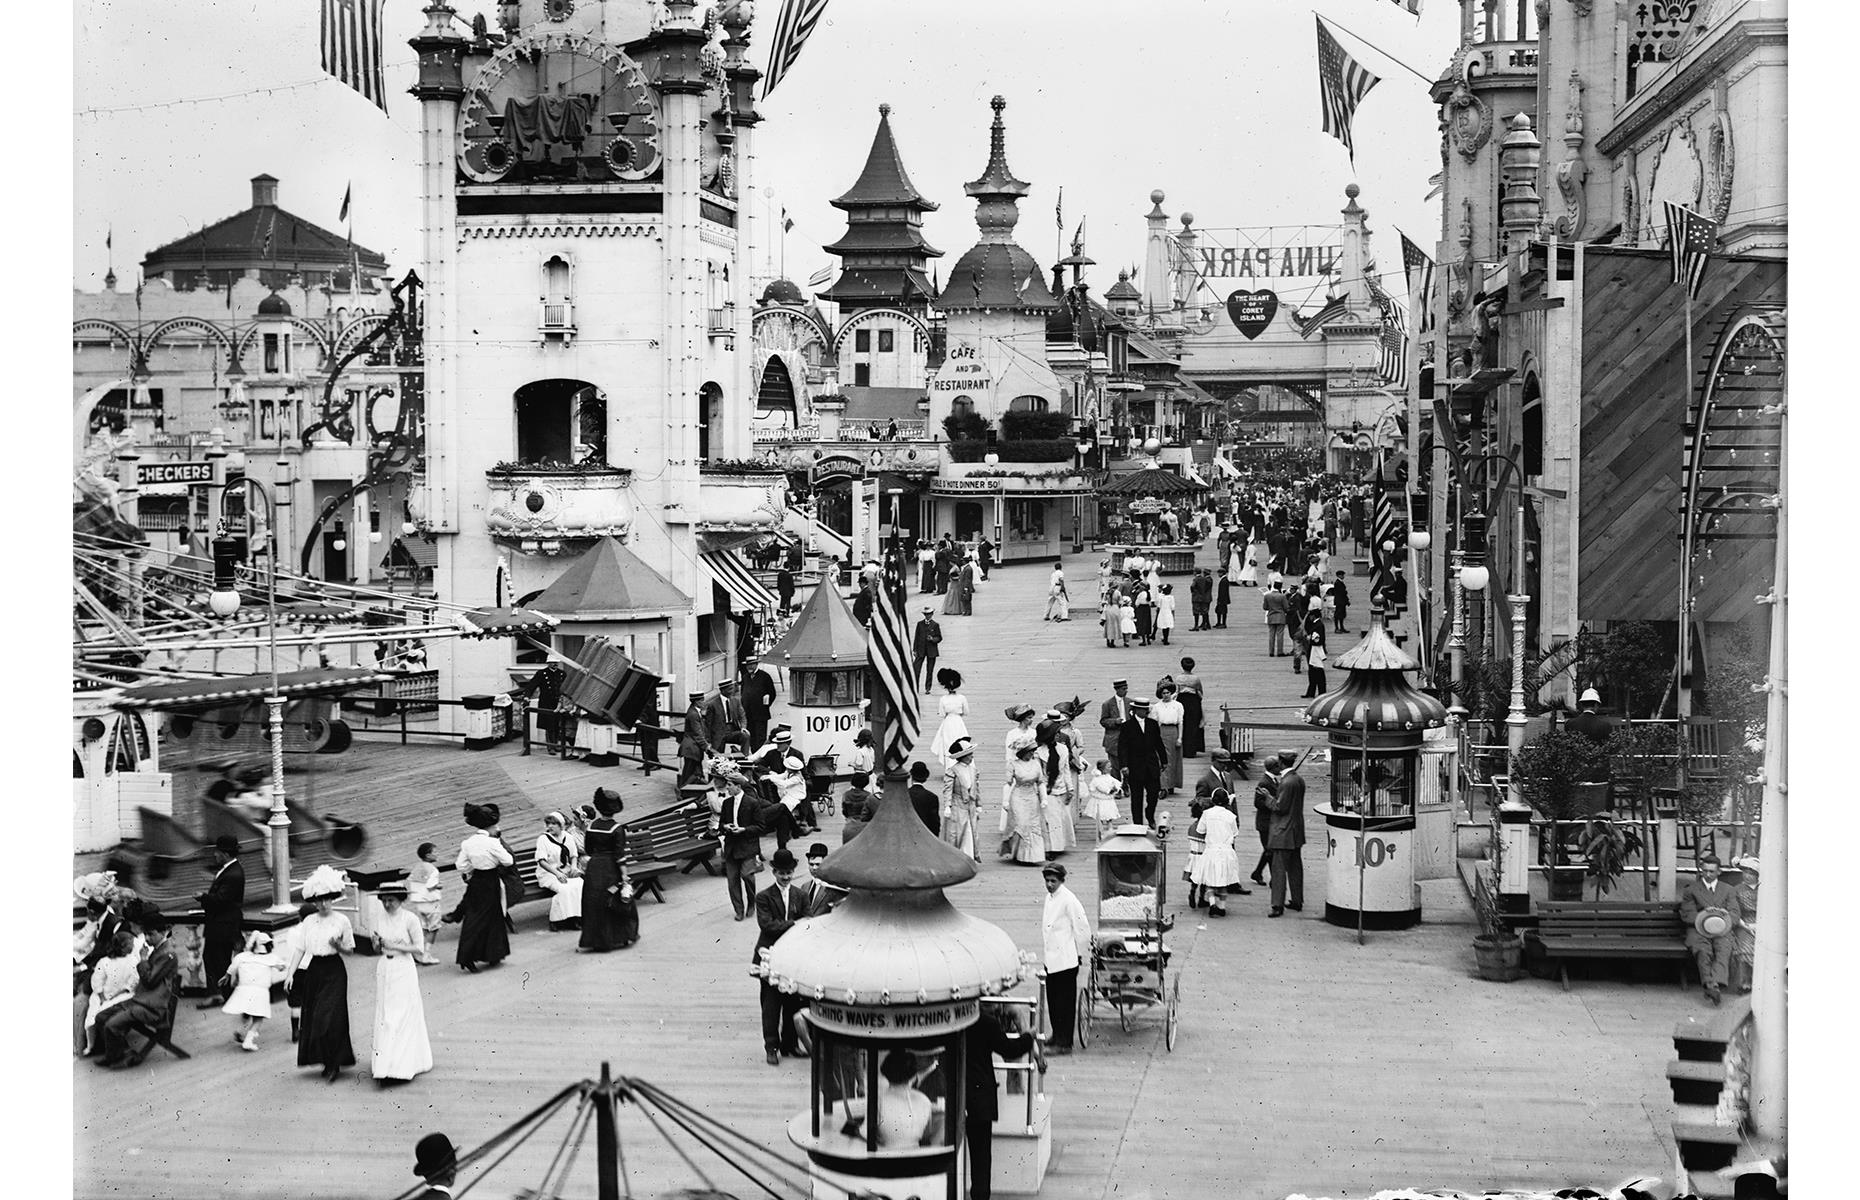 Slide 24 of 47: The attraction-filled Luna Park (pictured) packed in visitors for a little over four decades, but was sadly gutted by a fire in 1944. Original Luna Park was known for its whimsical entryway, its Electric Tower, which lit up after dark, and wholesome attractions such as the Helter Skelter. It has now been reborn as a new Coney Island park, modeled on the original, which is pictured here in the early 1900s.